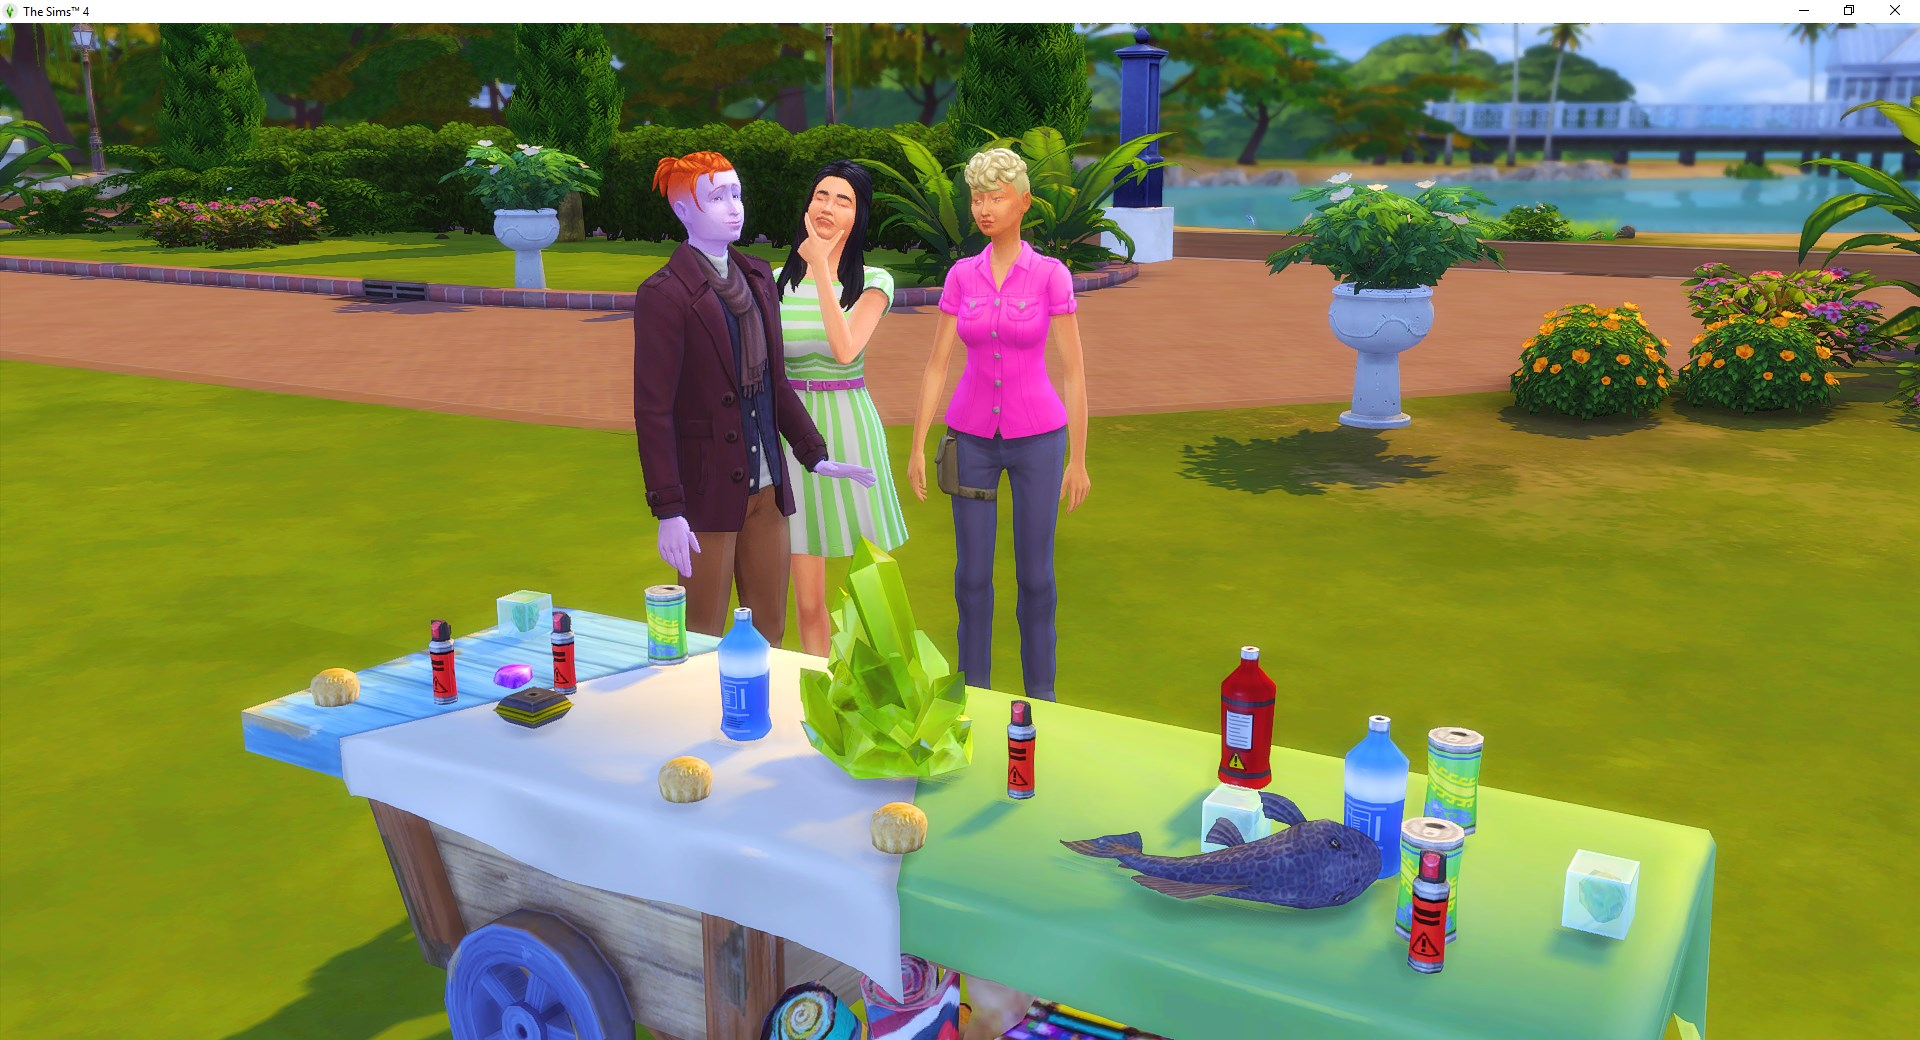 2019-08-30 16_45_19-The Sims™ 4